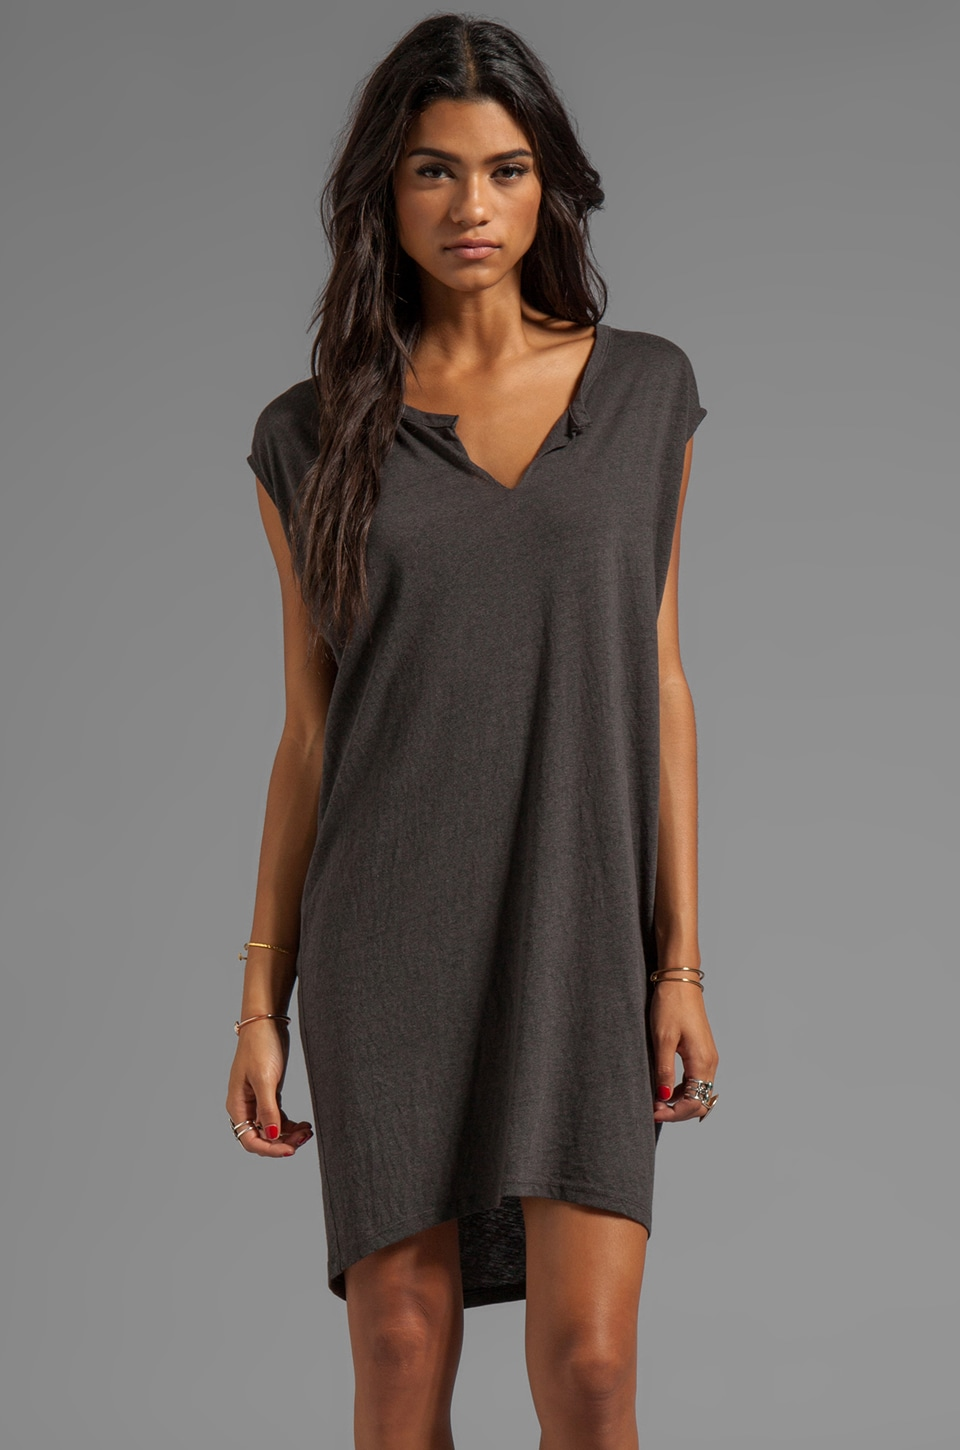 SUNDRY Tunic Dress in Old Black